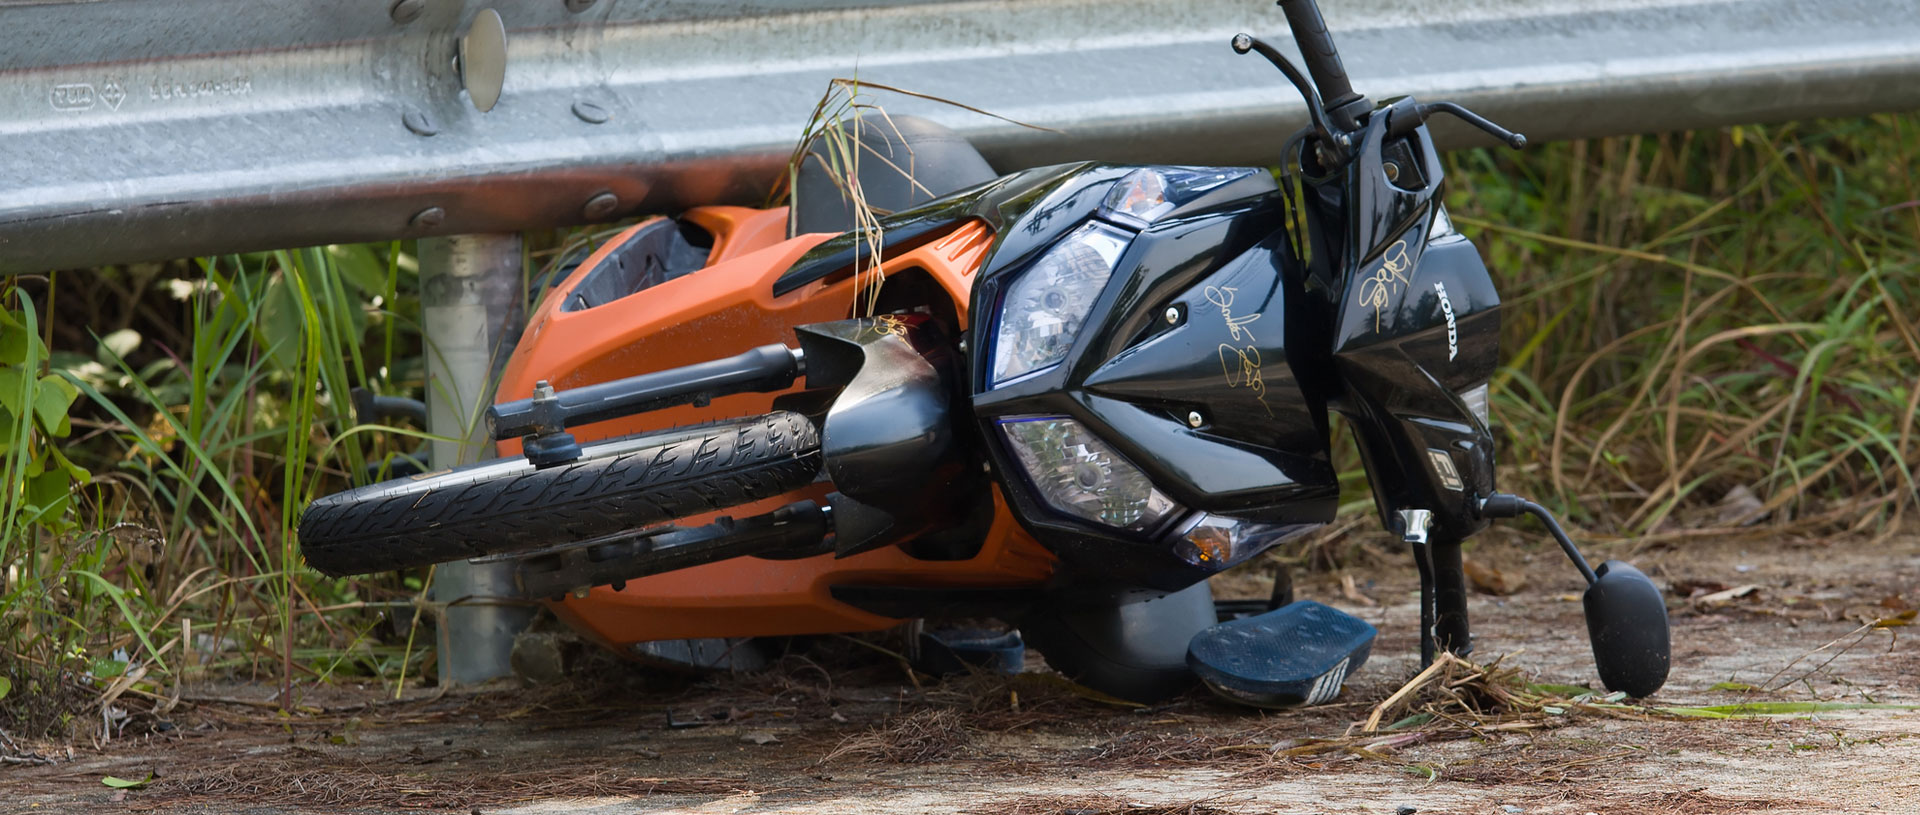 Motorcycle Accident Attorney Glendale | Motorcycle Injury ...